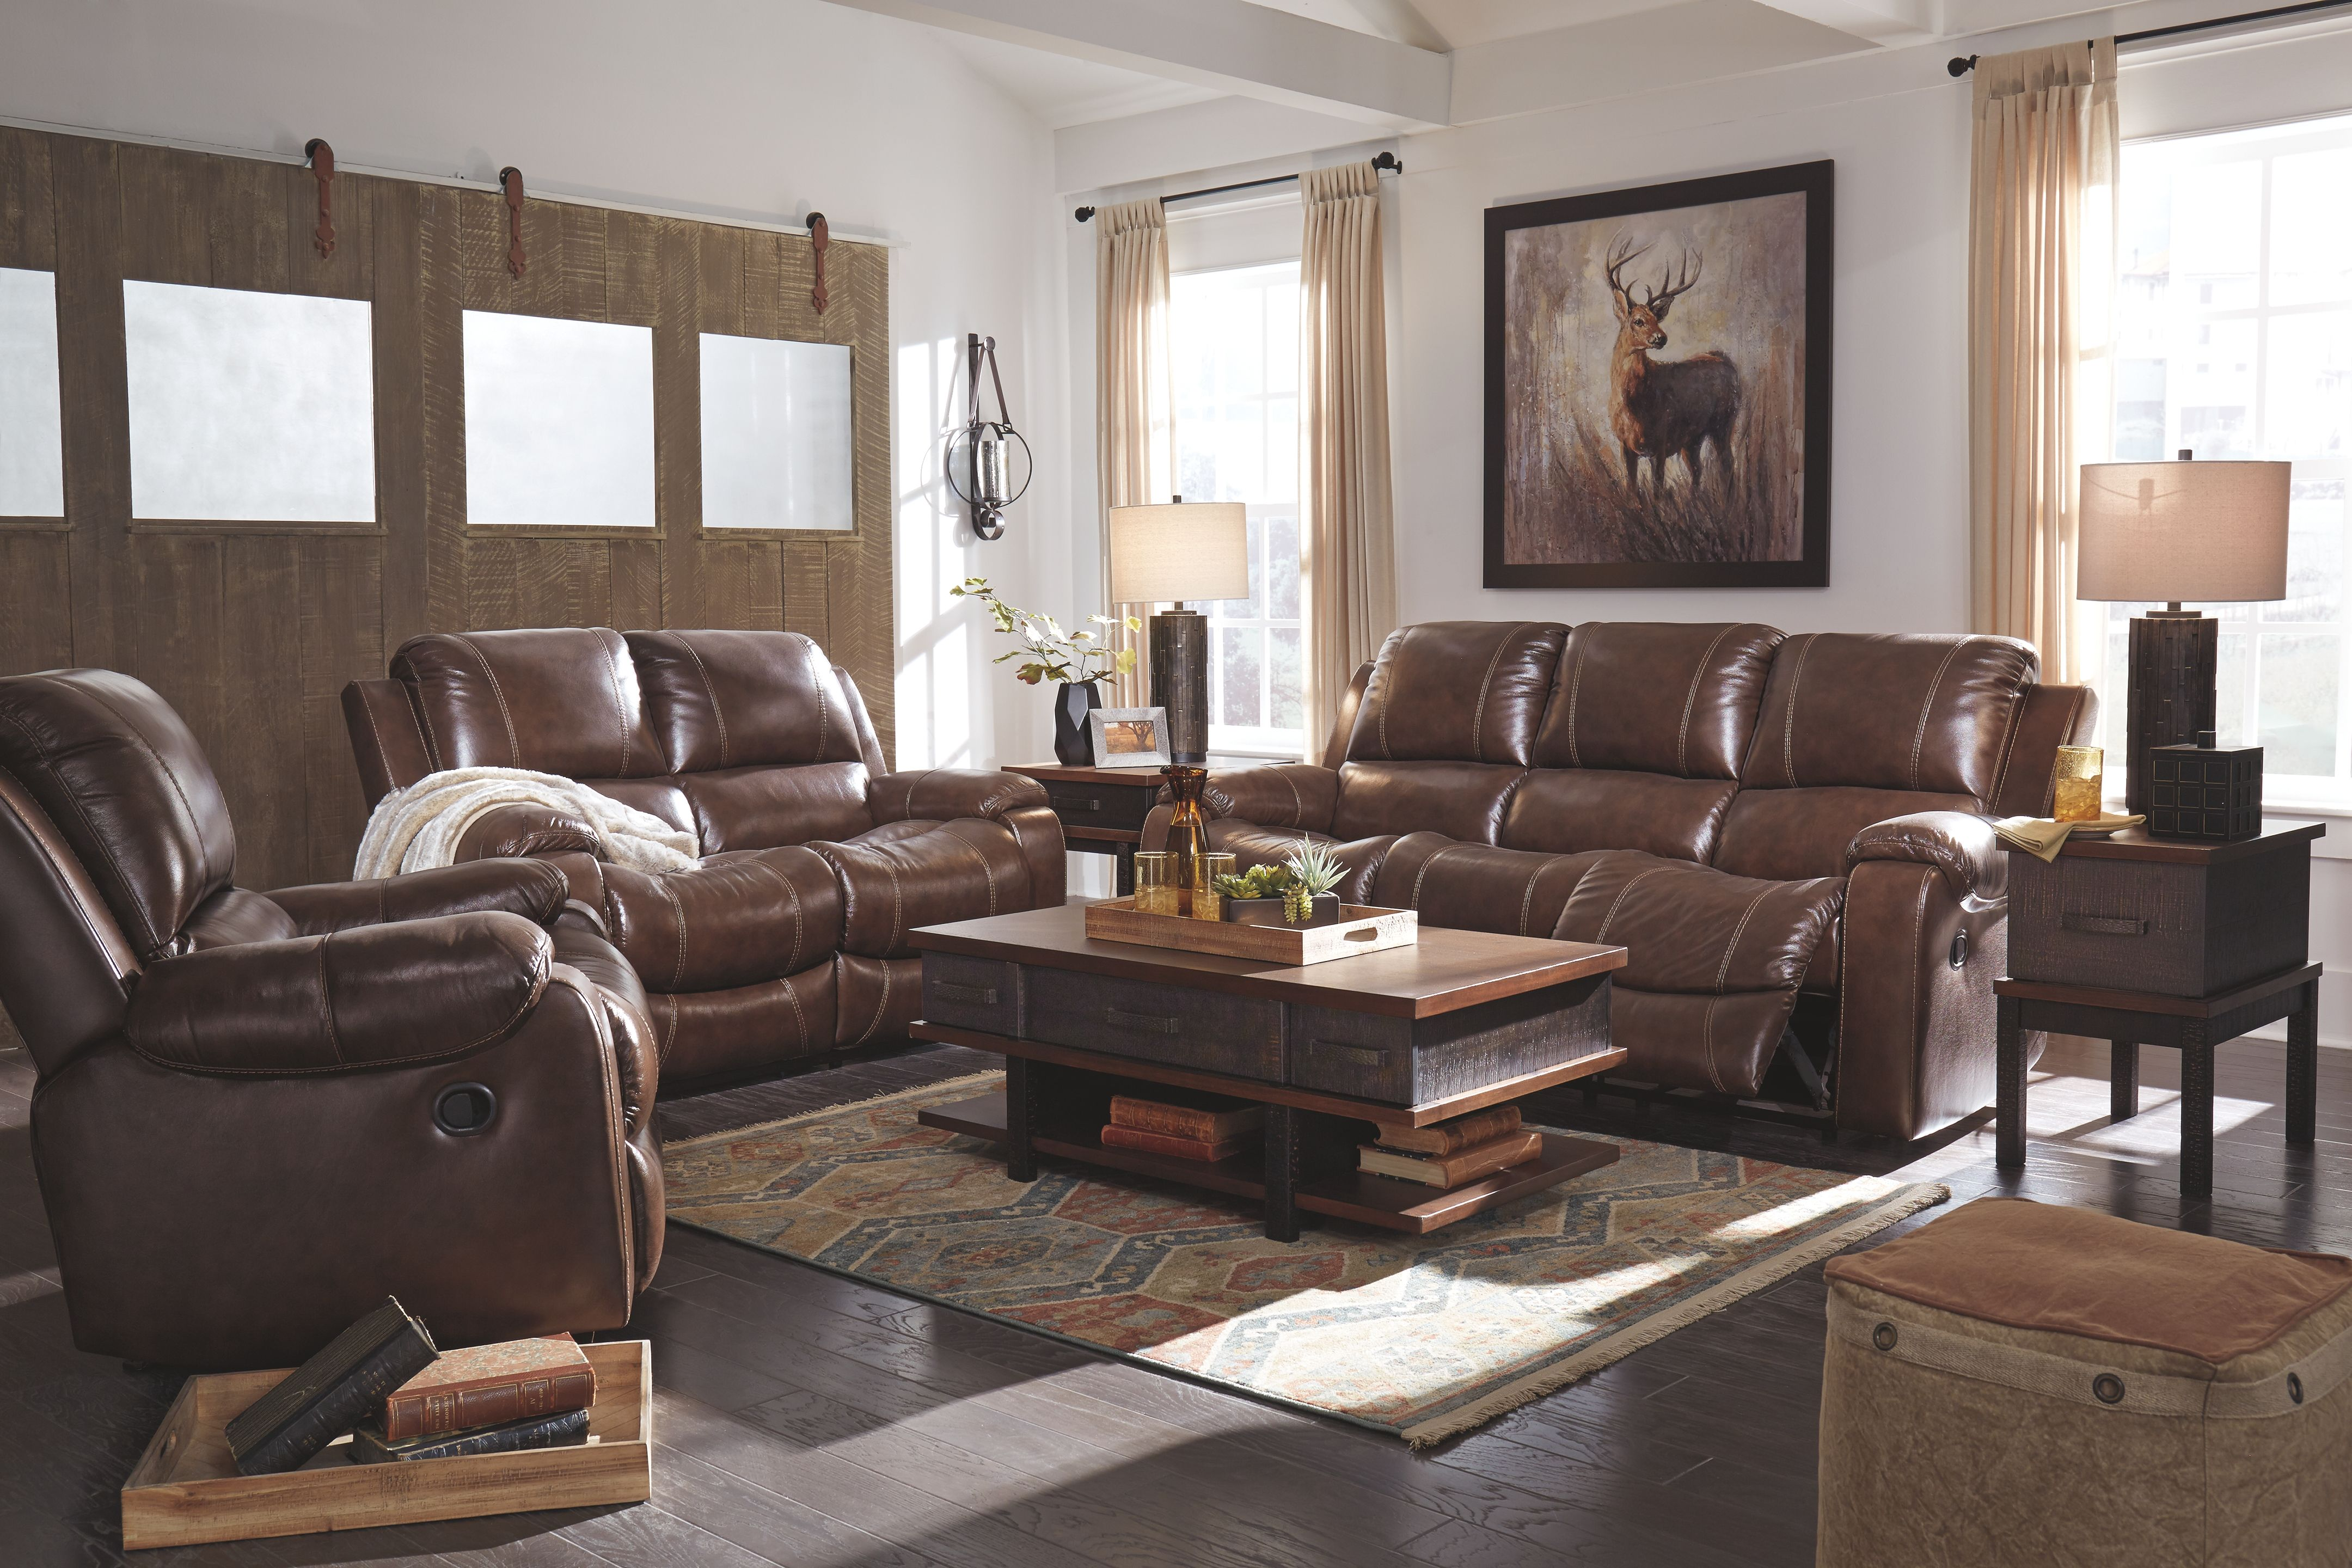 rackingburg mahogany rec sofa loveseat rocker recliner end table pwr pub modern espresso coffee butcher block pipe dolphins tailgate bedside lamps laura ashley dining patio